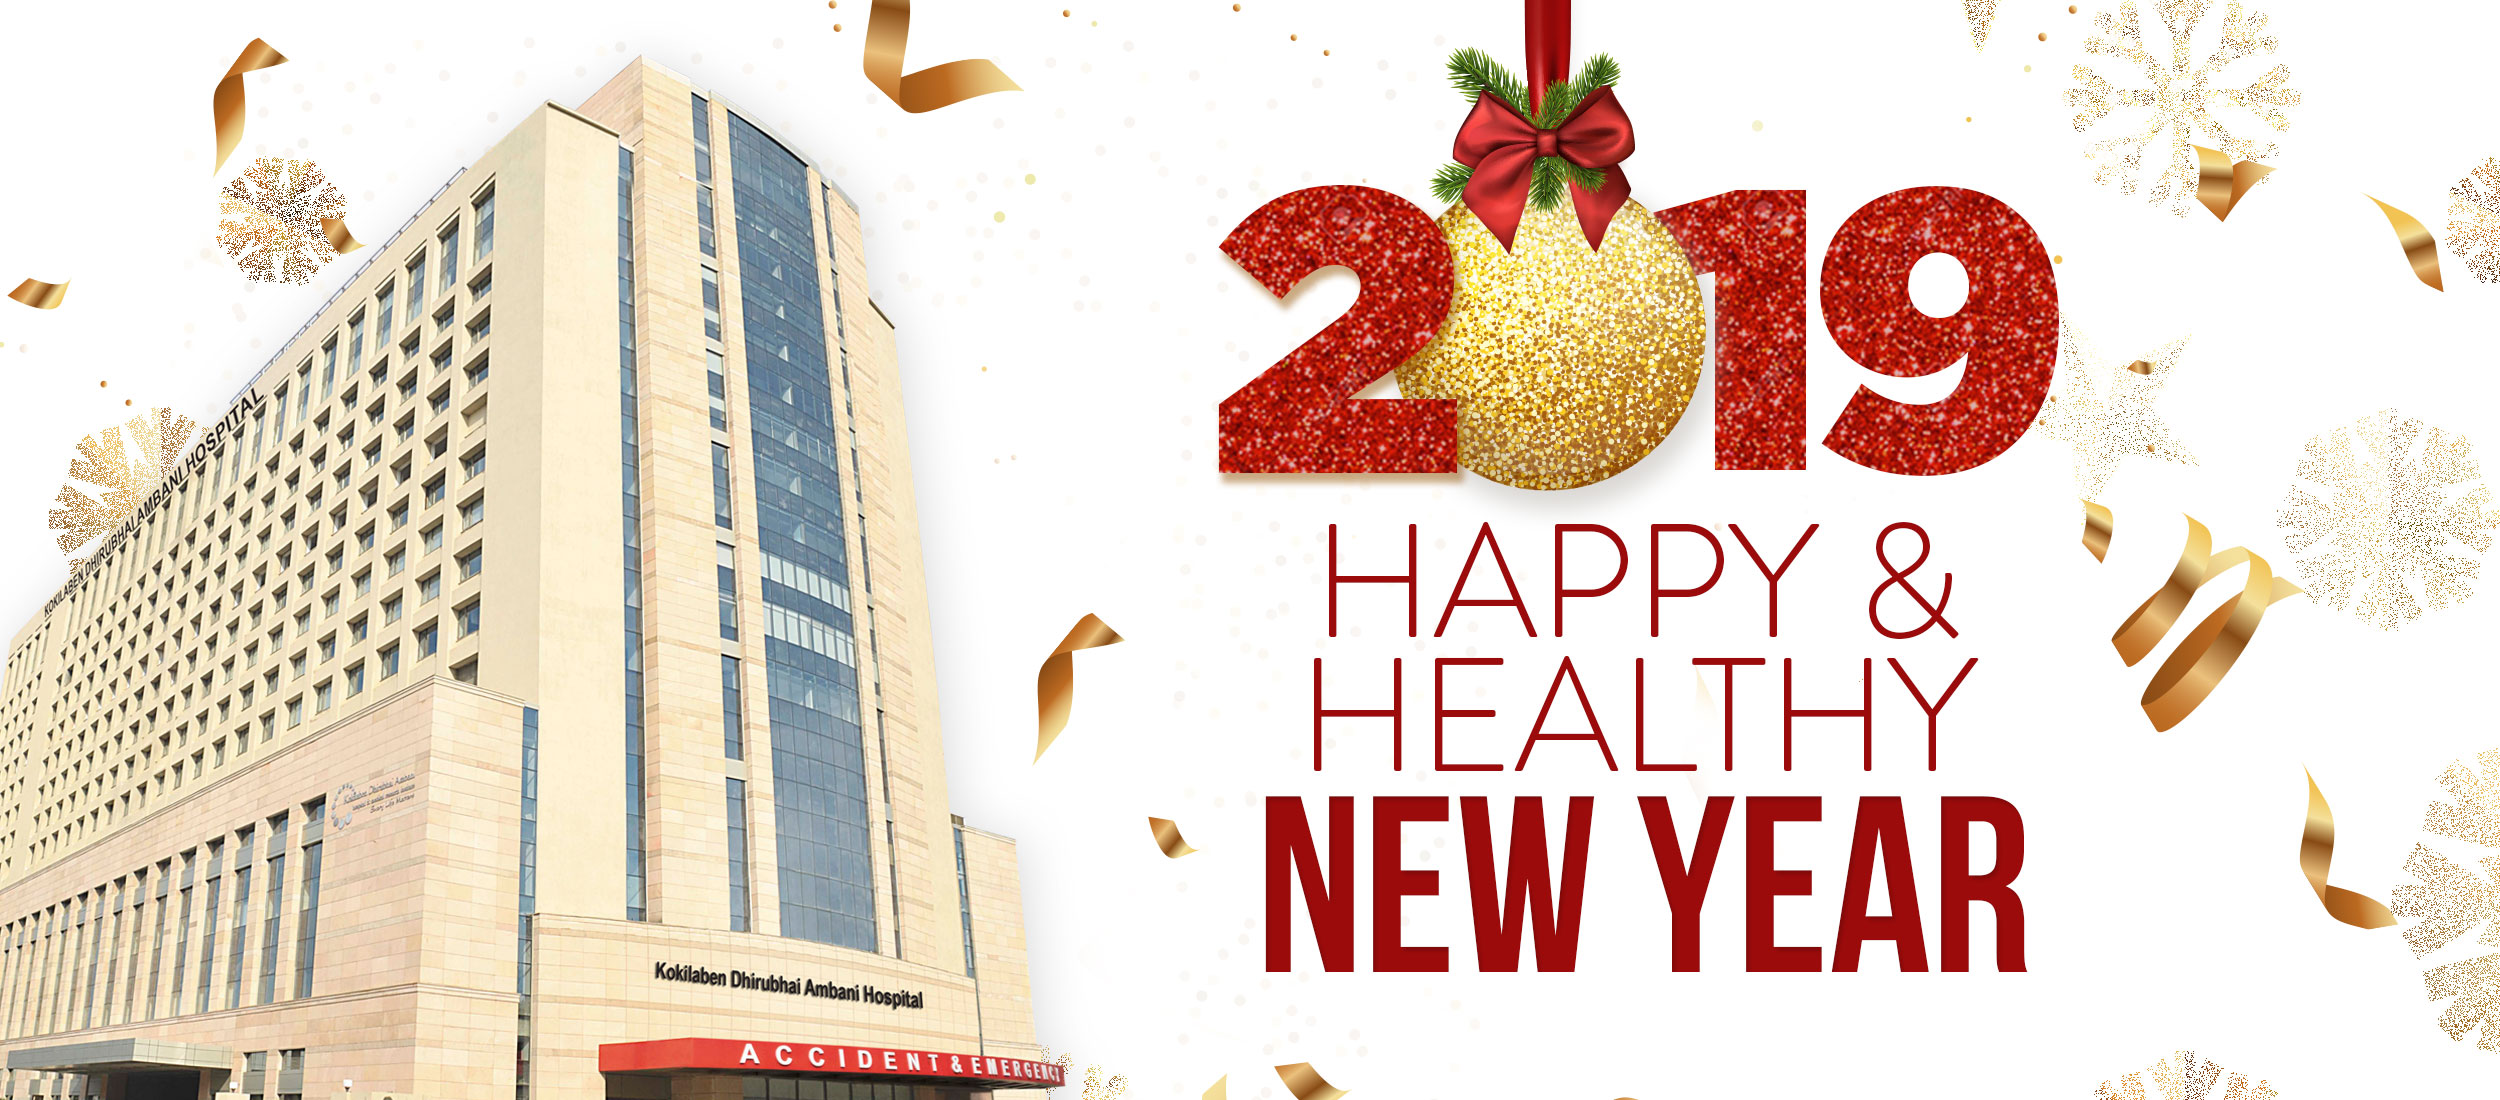 Kokilaben Dhirubhai Ambani Hospital - 2019 Happy & Healthy New Year